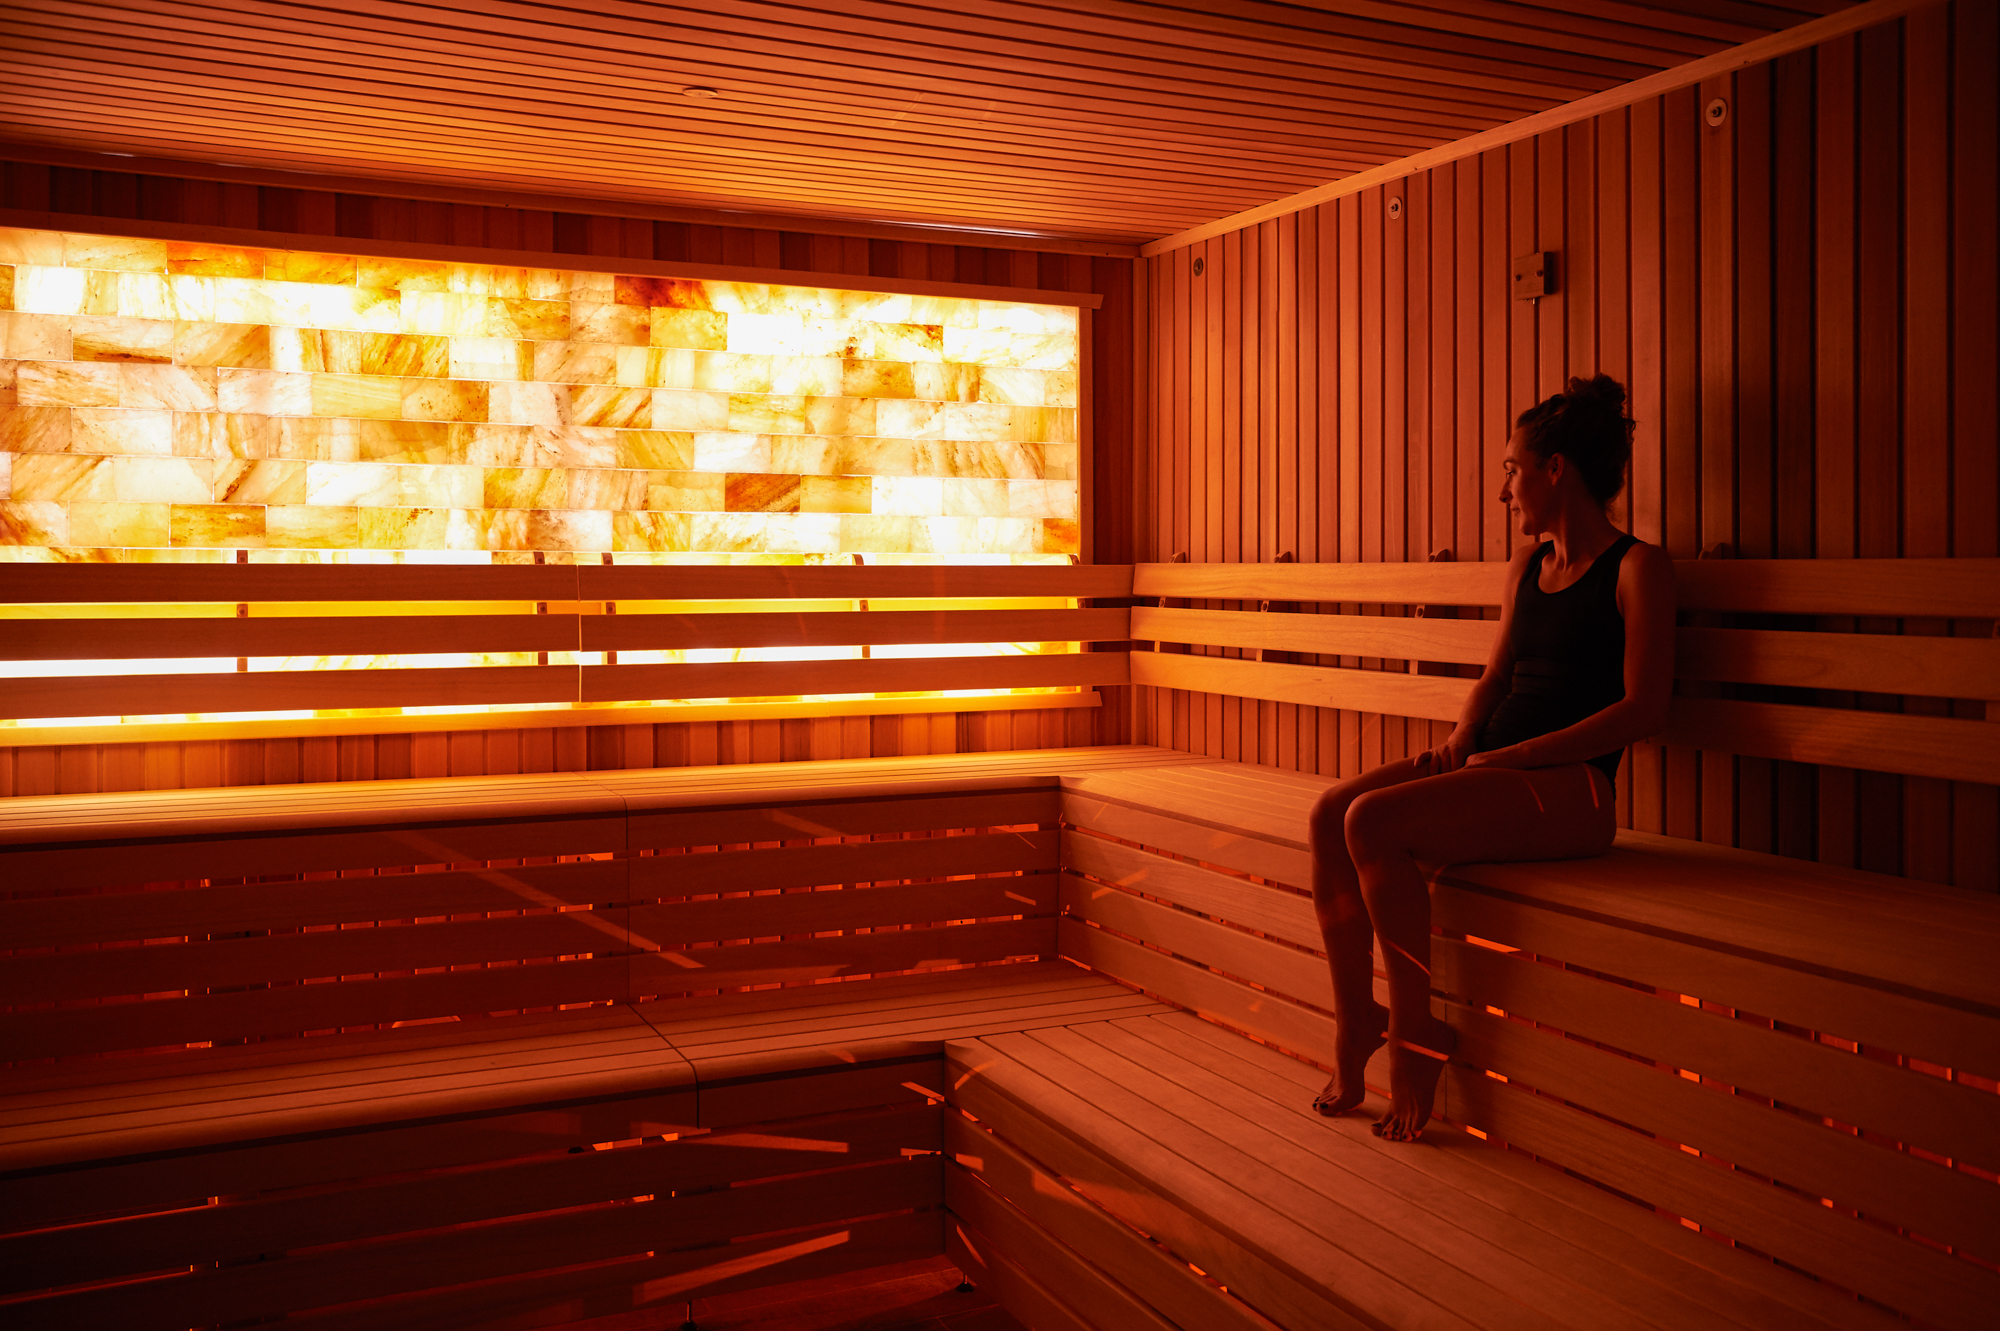 A woman relaxing in the sauna